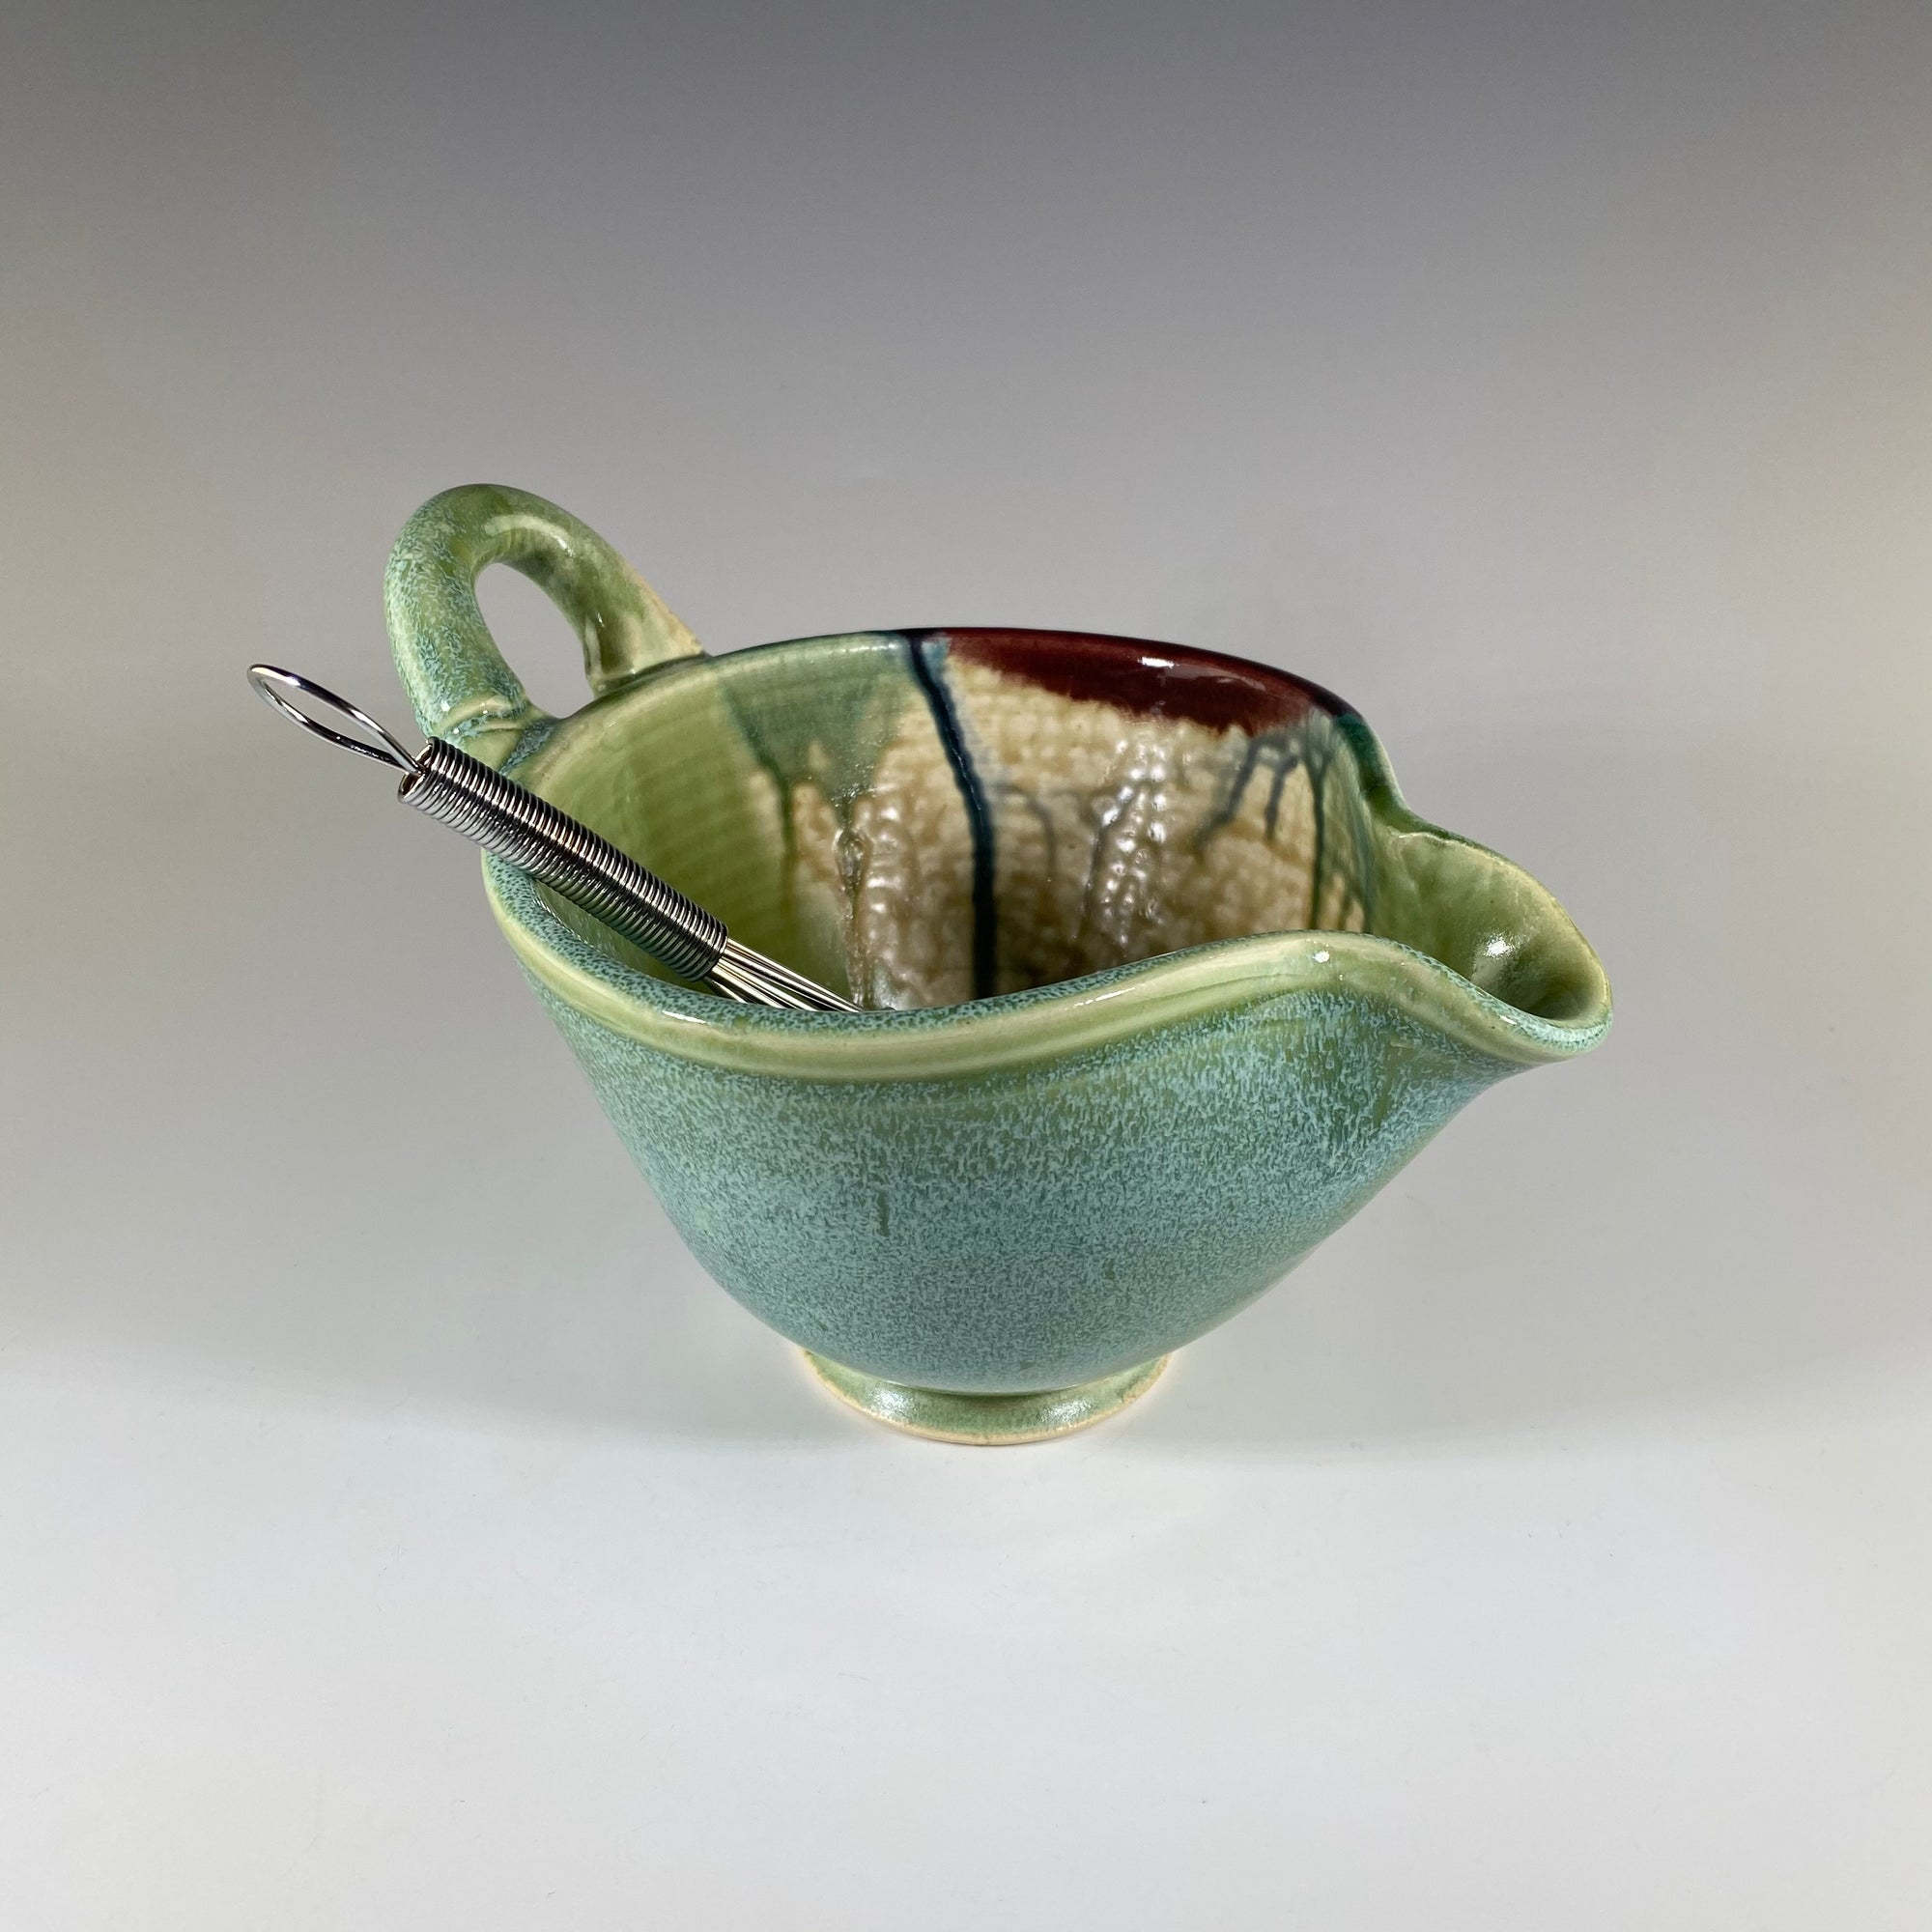 Small Mixing Bowl in Light Green and Tan - Heart of the Home PA